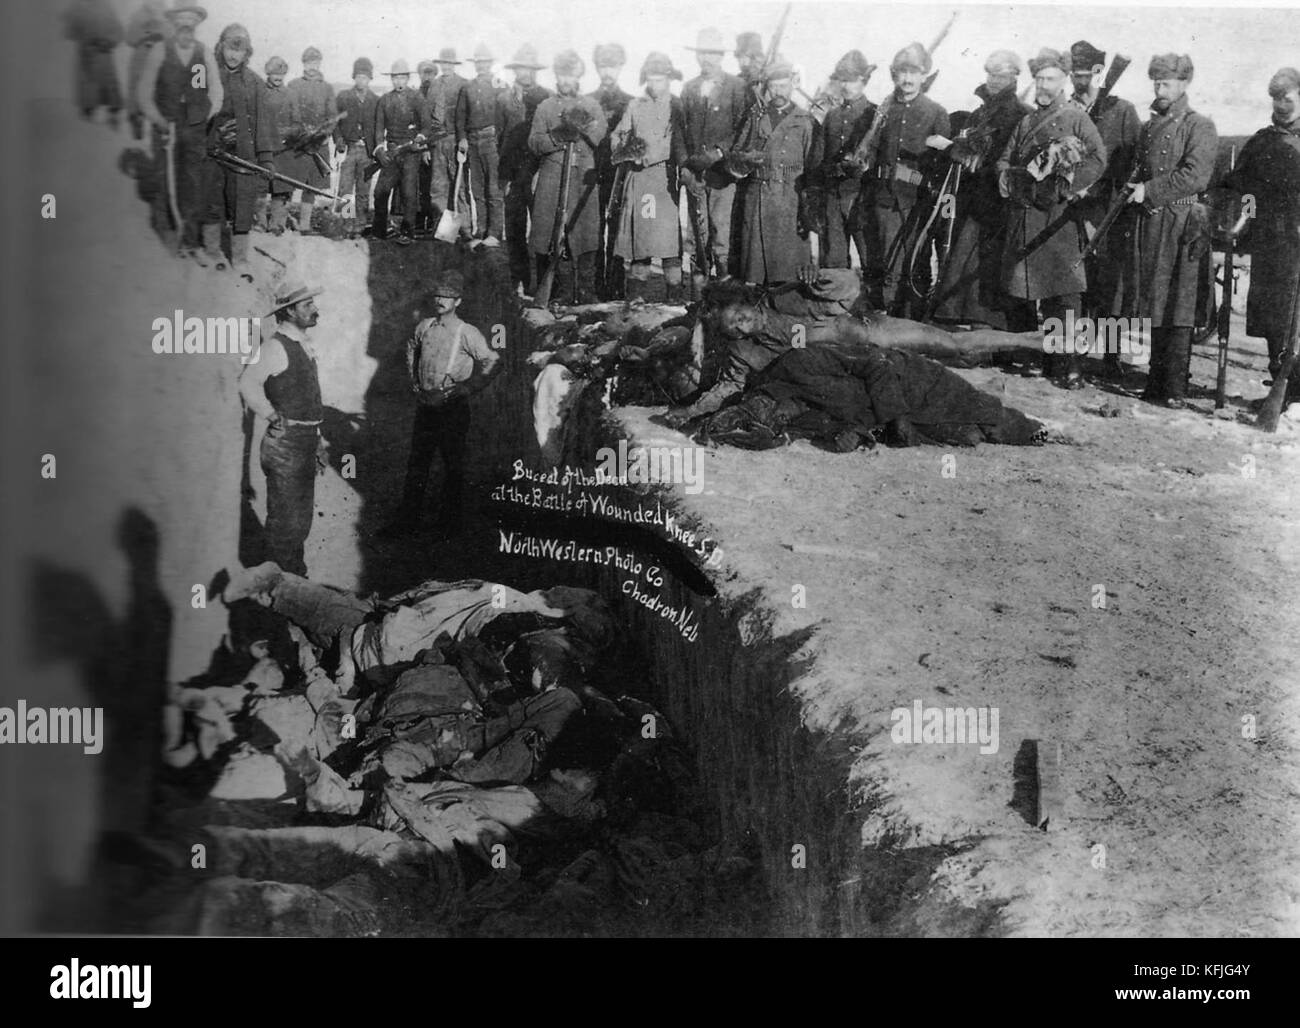 Burial of the dead after the massacre of Wounded Knee. U.S. Soldiers putting Indians in common grave; some corpses Stock Photo